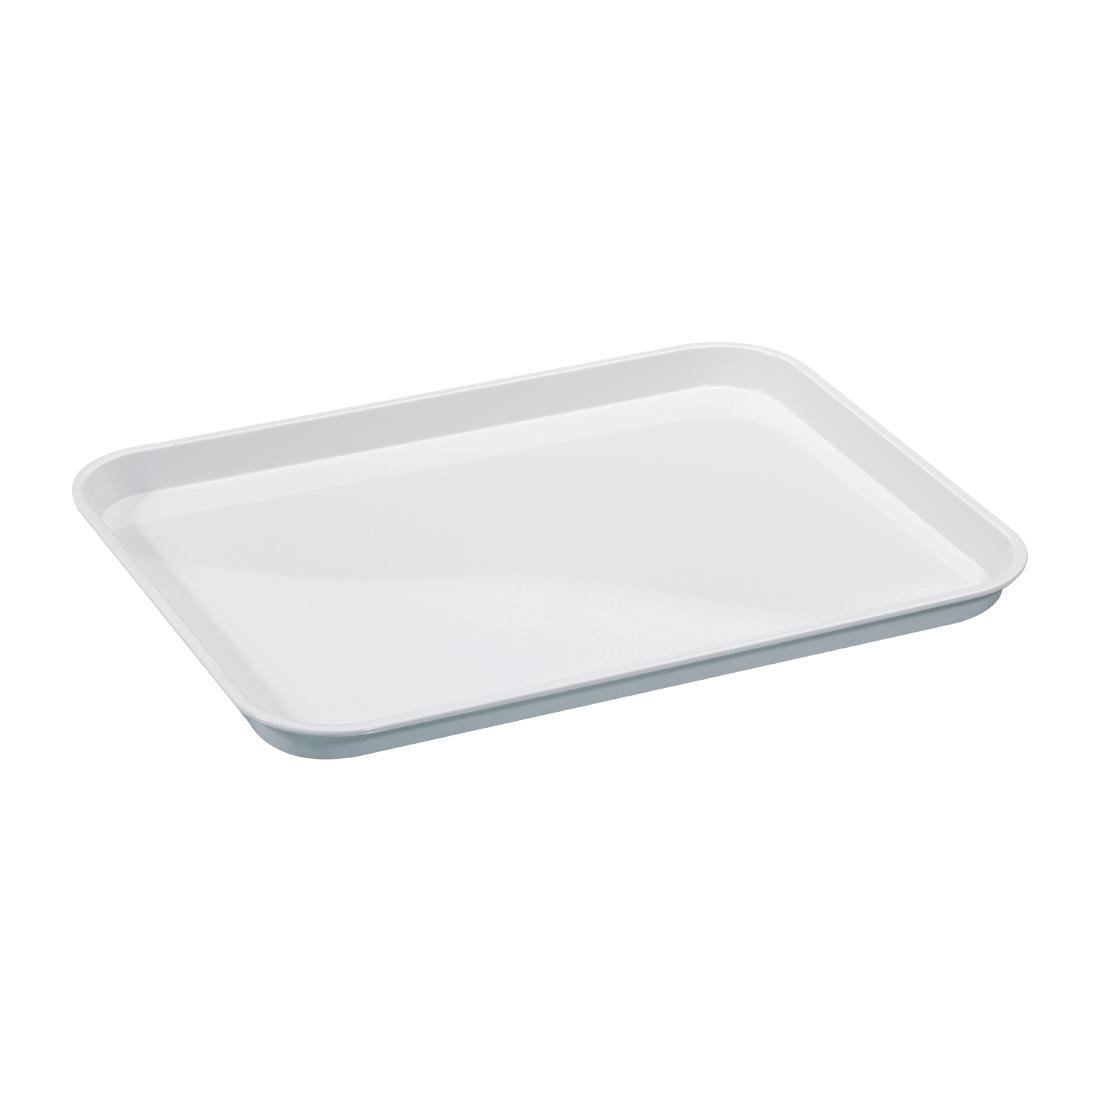 High Impact ABS Food Tray 16in